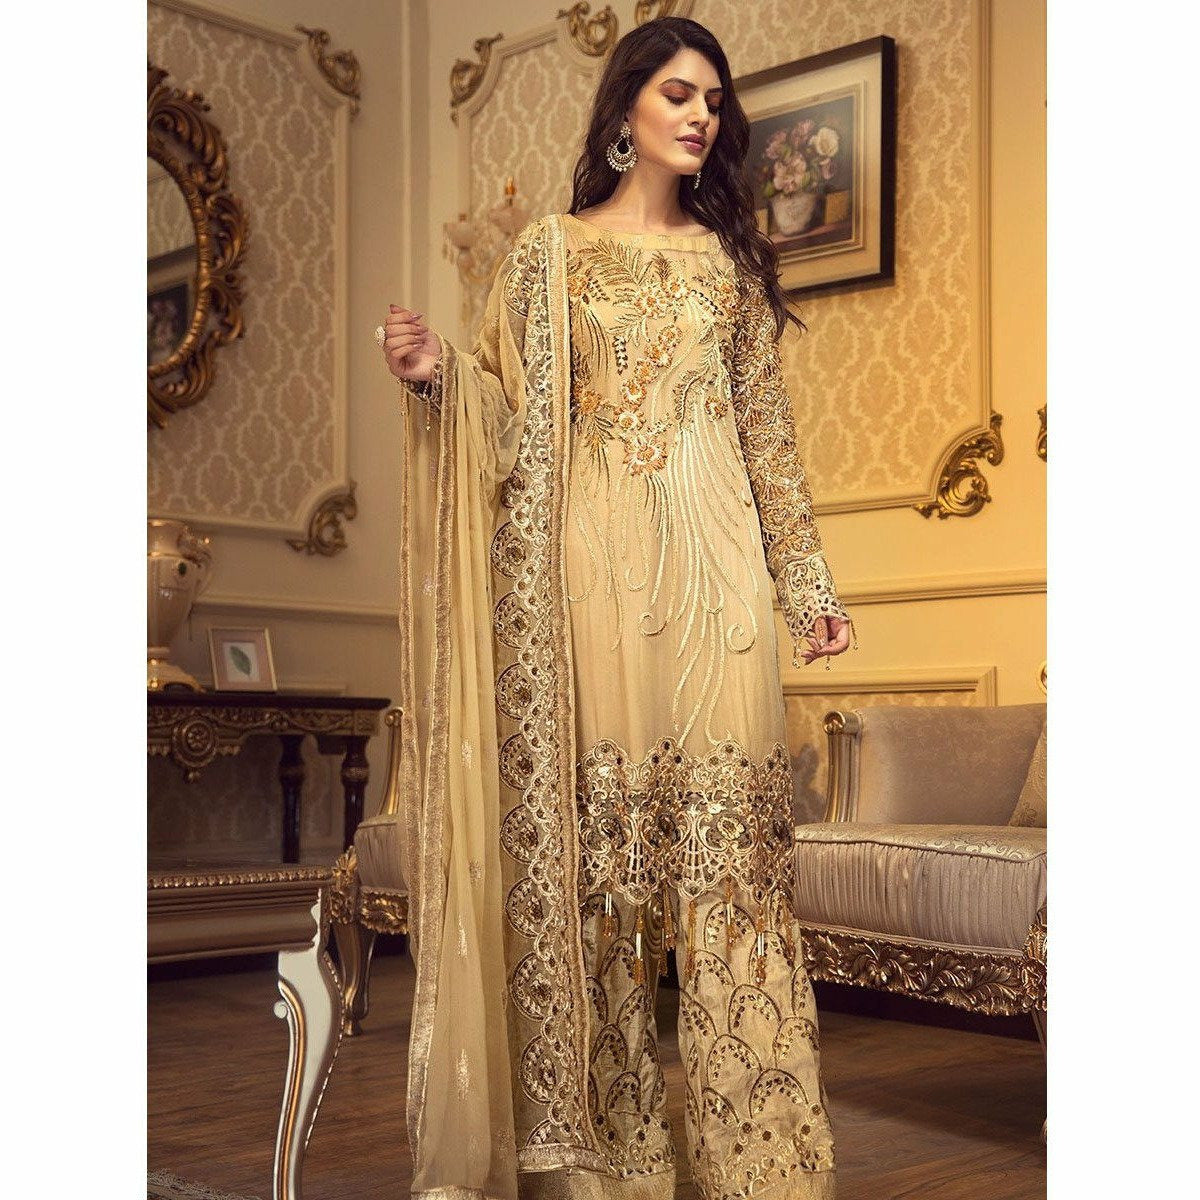 designer womens clothing, Pakistani clothes, formal dresses for women